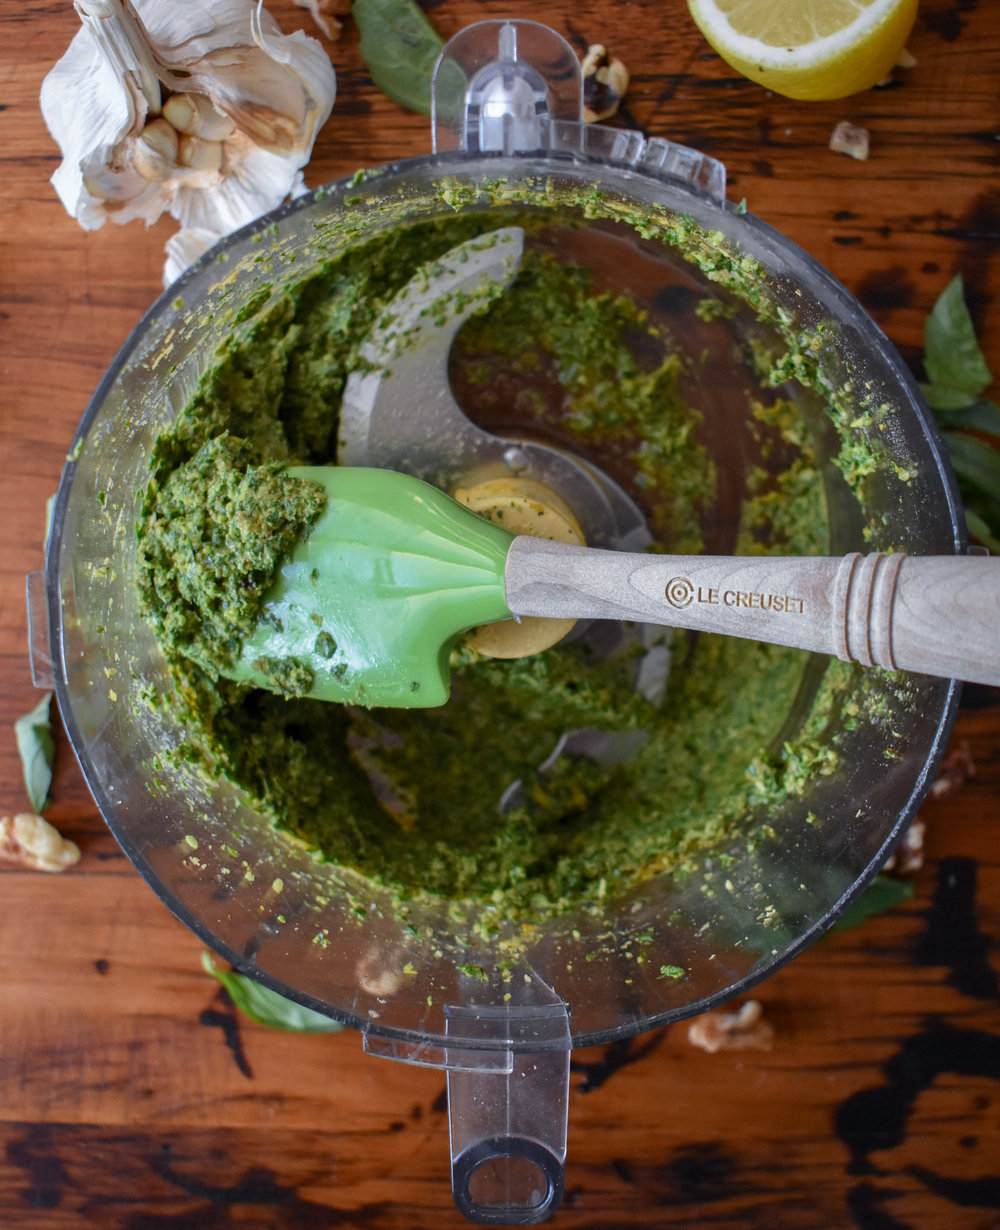 3. Turn the food processor on and drizzle in the olive oil while it blends. Turn off once all oil is in. Scrape down sides and run again for 8-10 seconds until well blended.